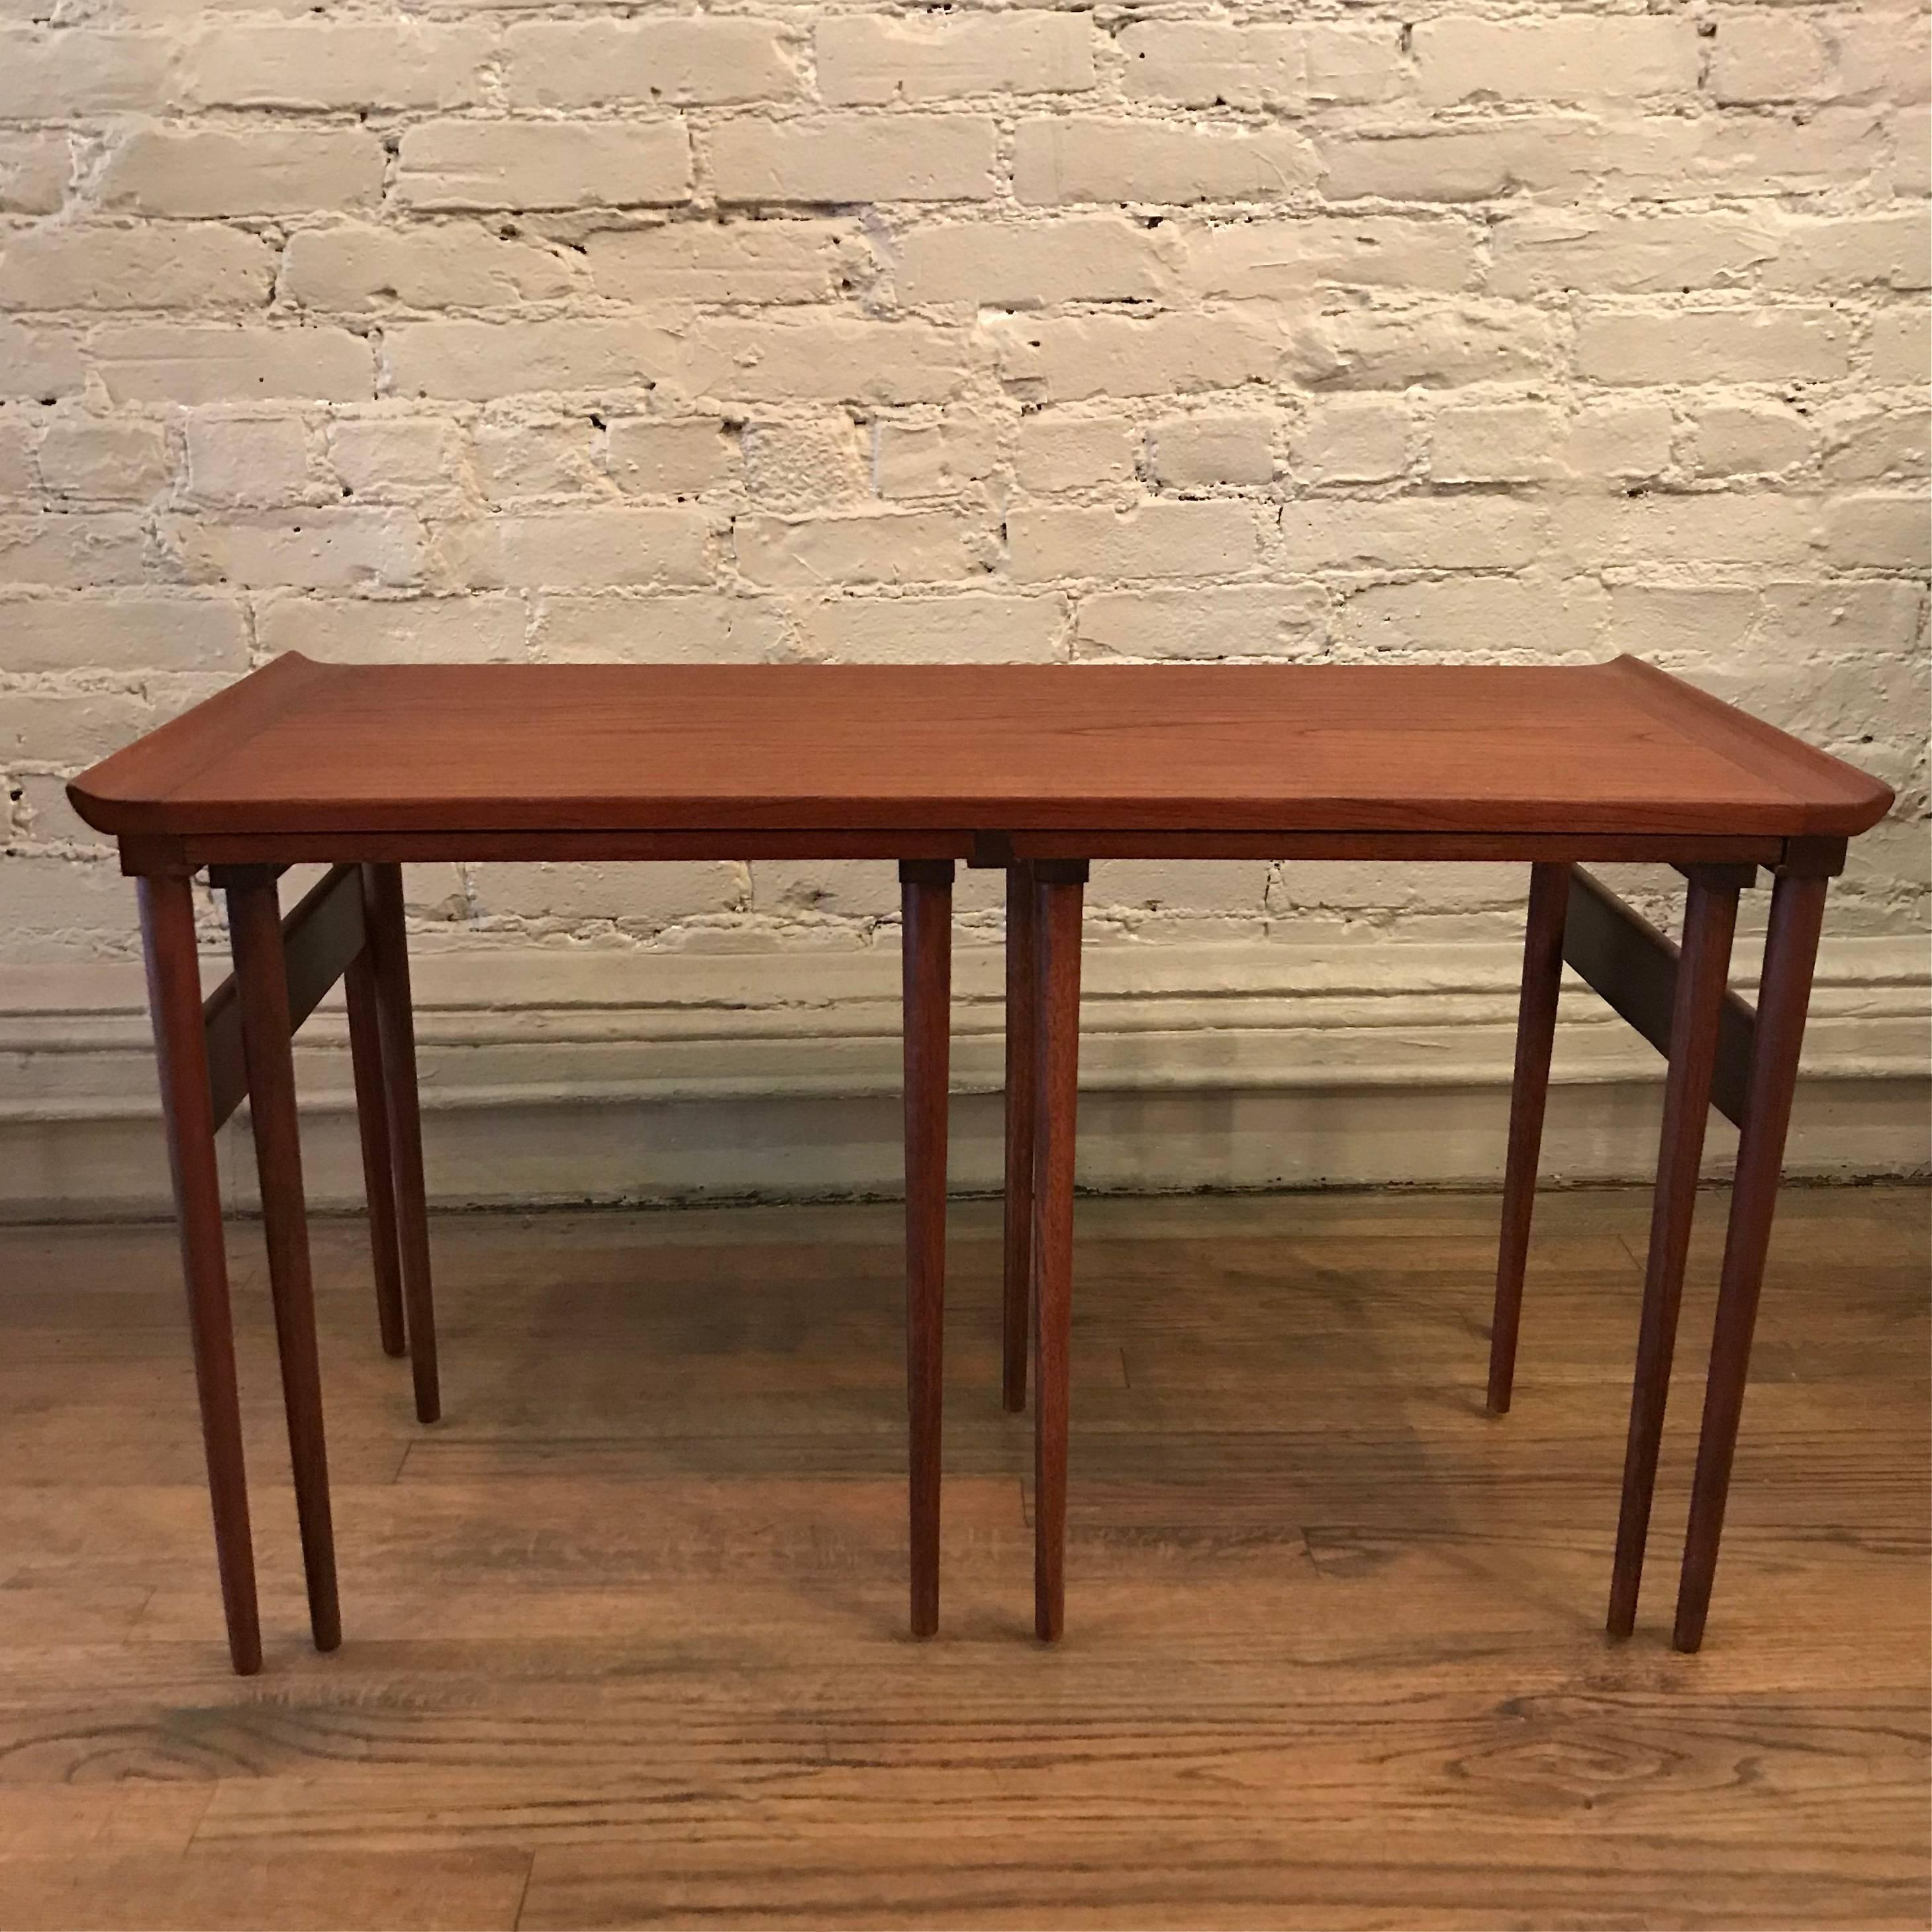 Lovely, Danish Modern, Walnut, Nesting Table Set Consists Of A Long, Low